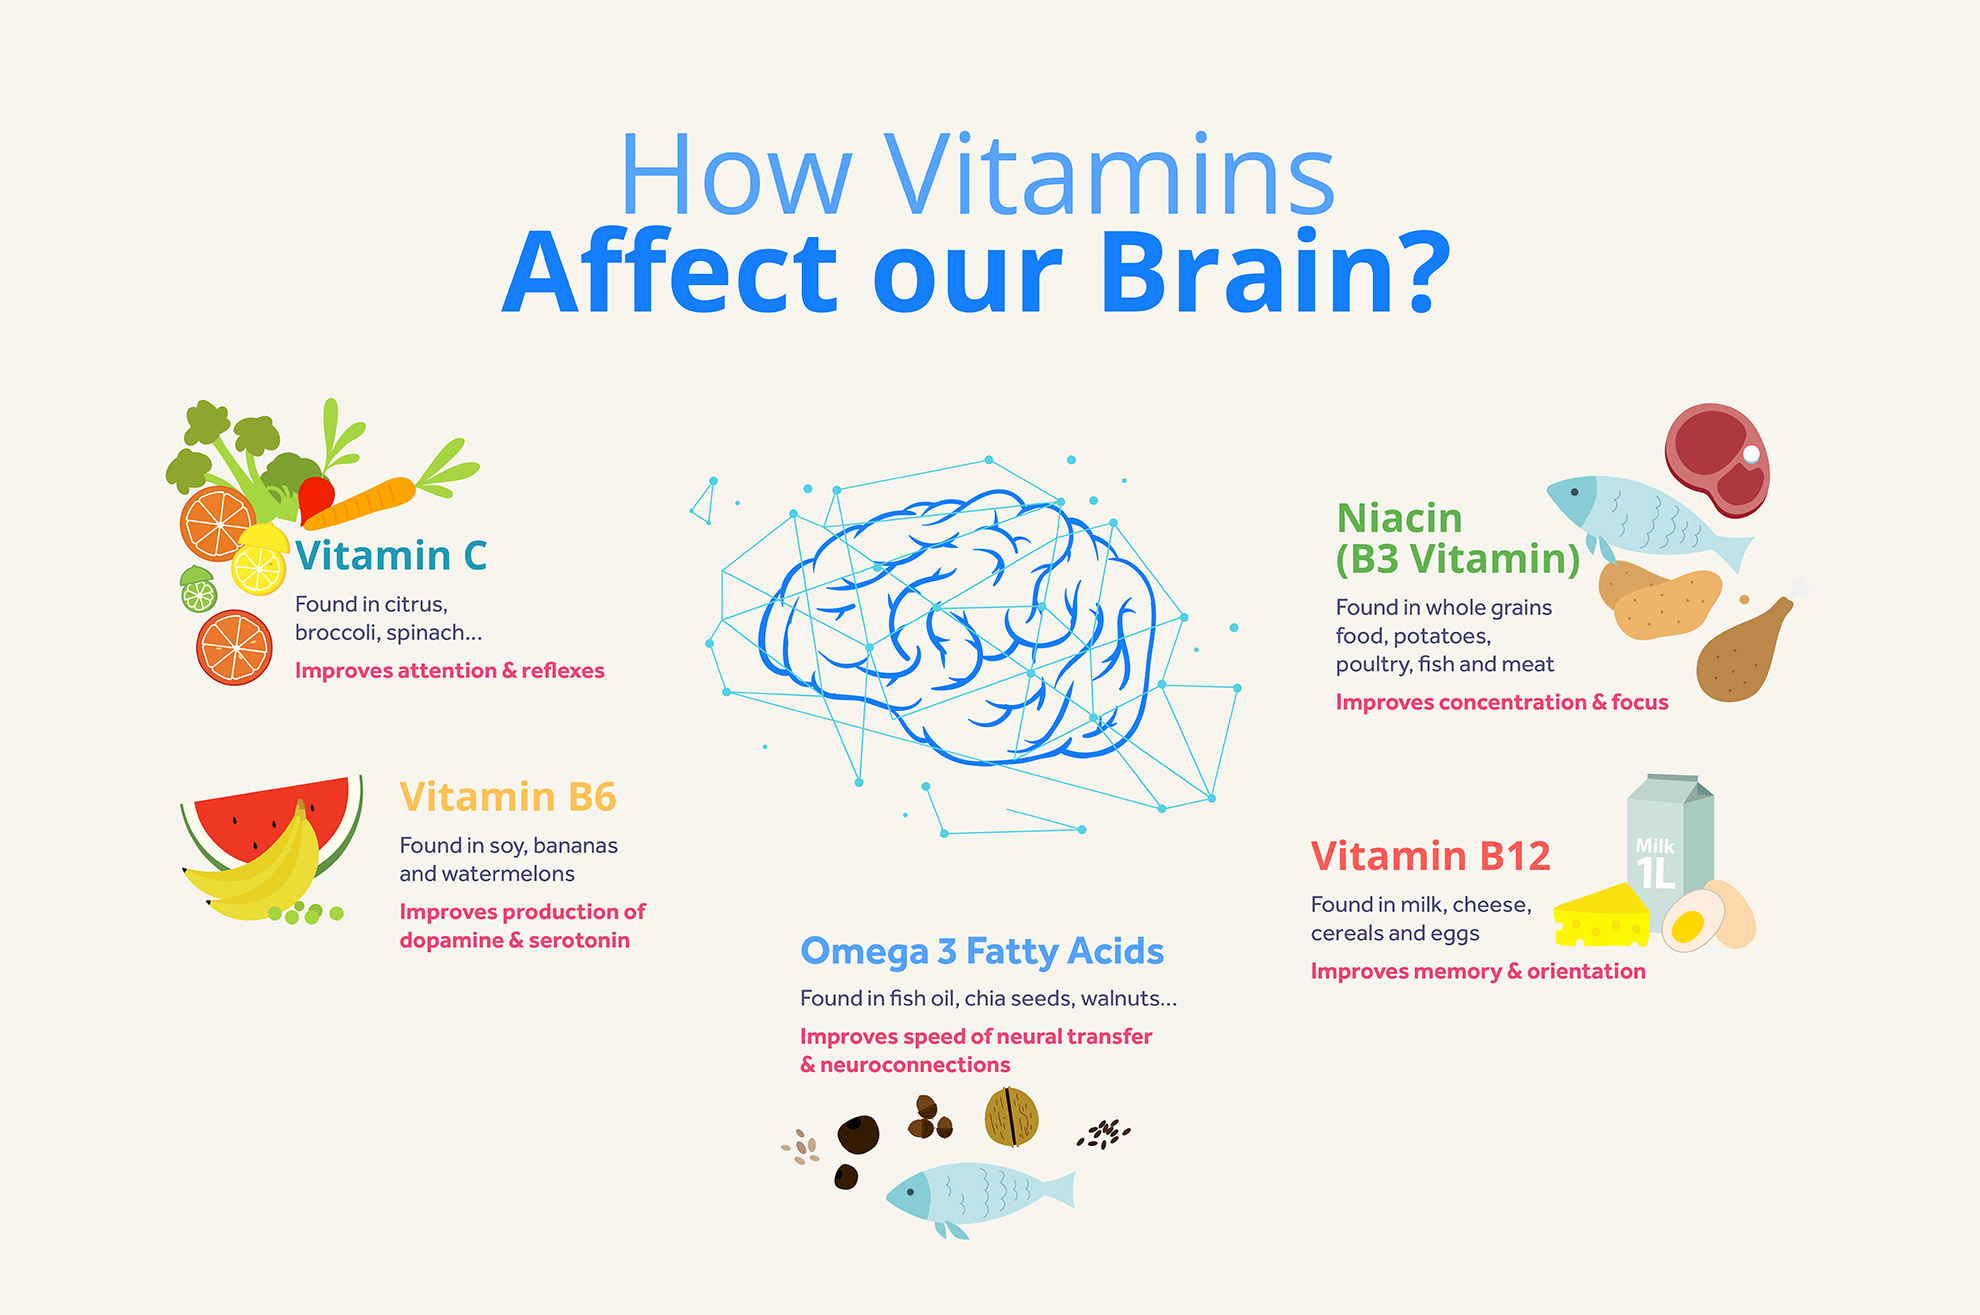 How Vitamins Affect our Brain